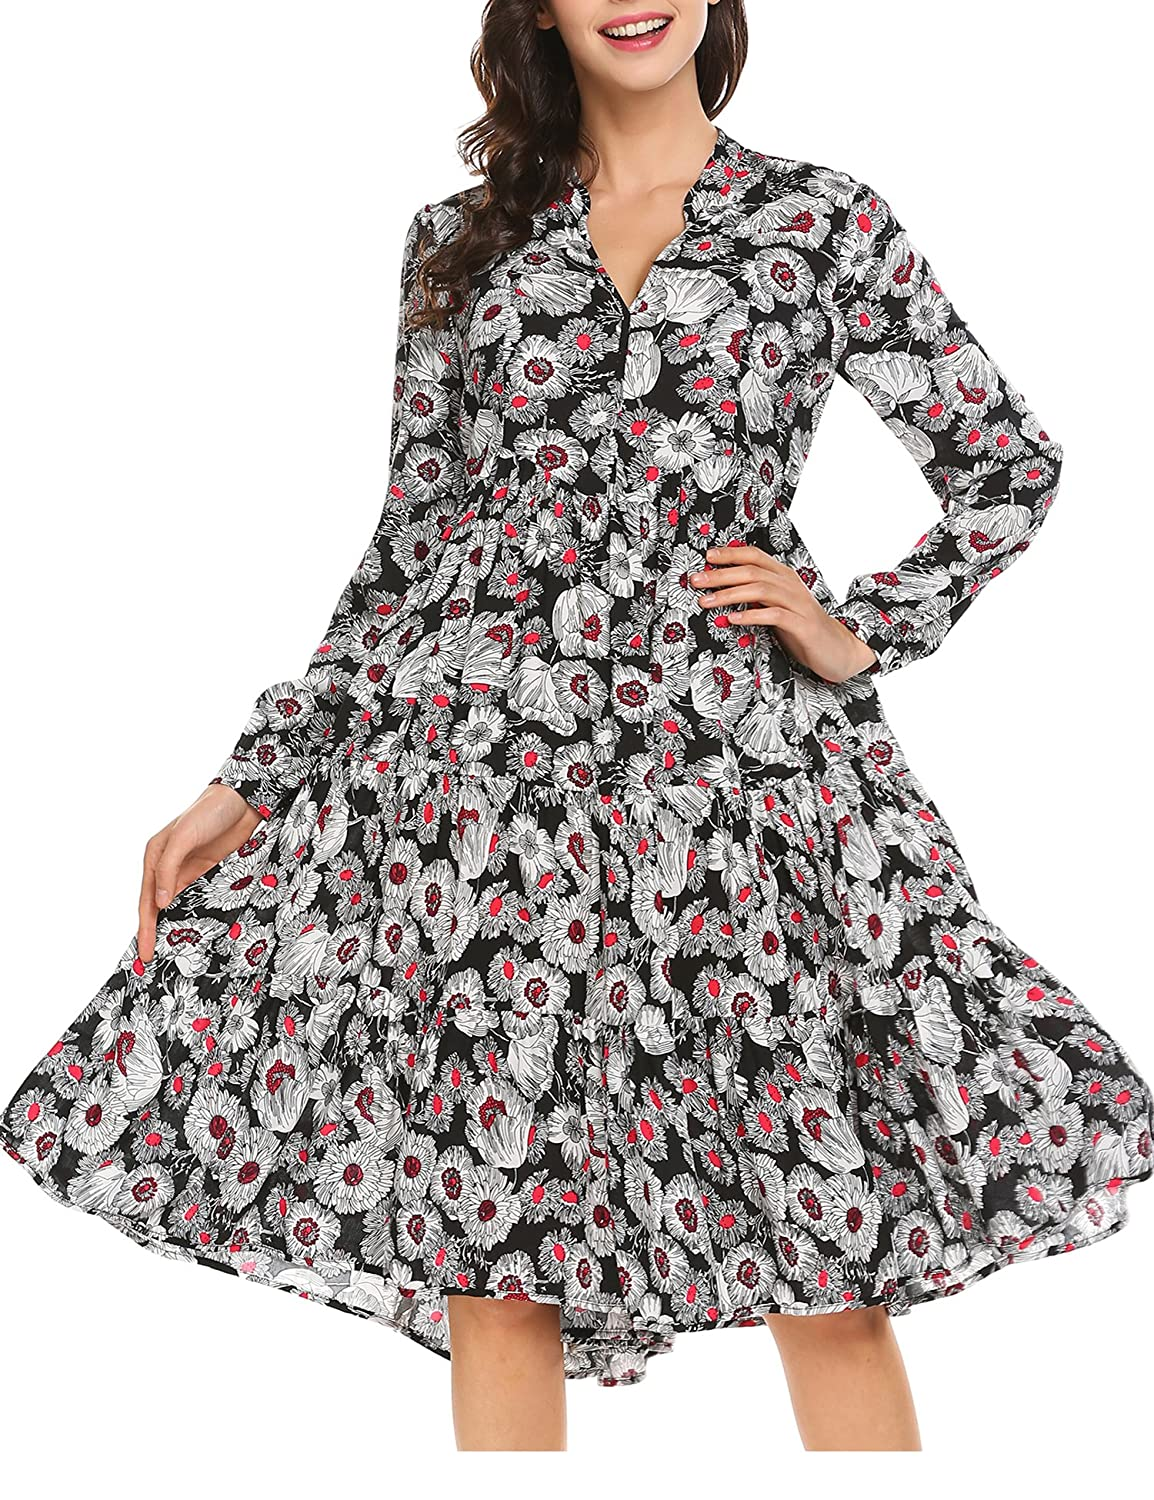 Dear To Me Floral Print Midi Dress with 3//4 Sleeves and Pockets in Navy